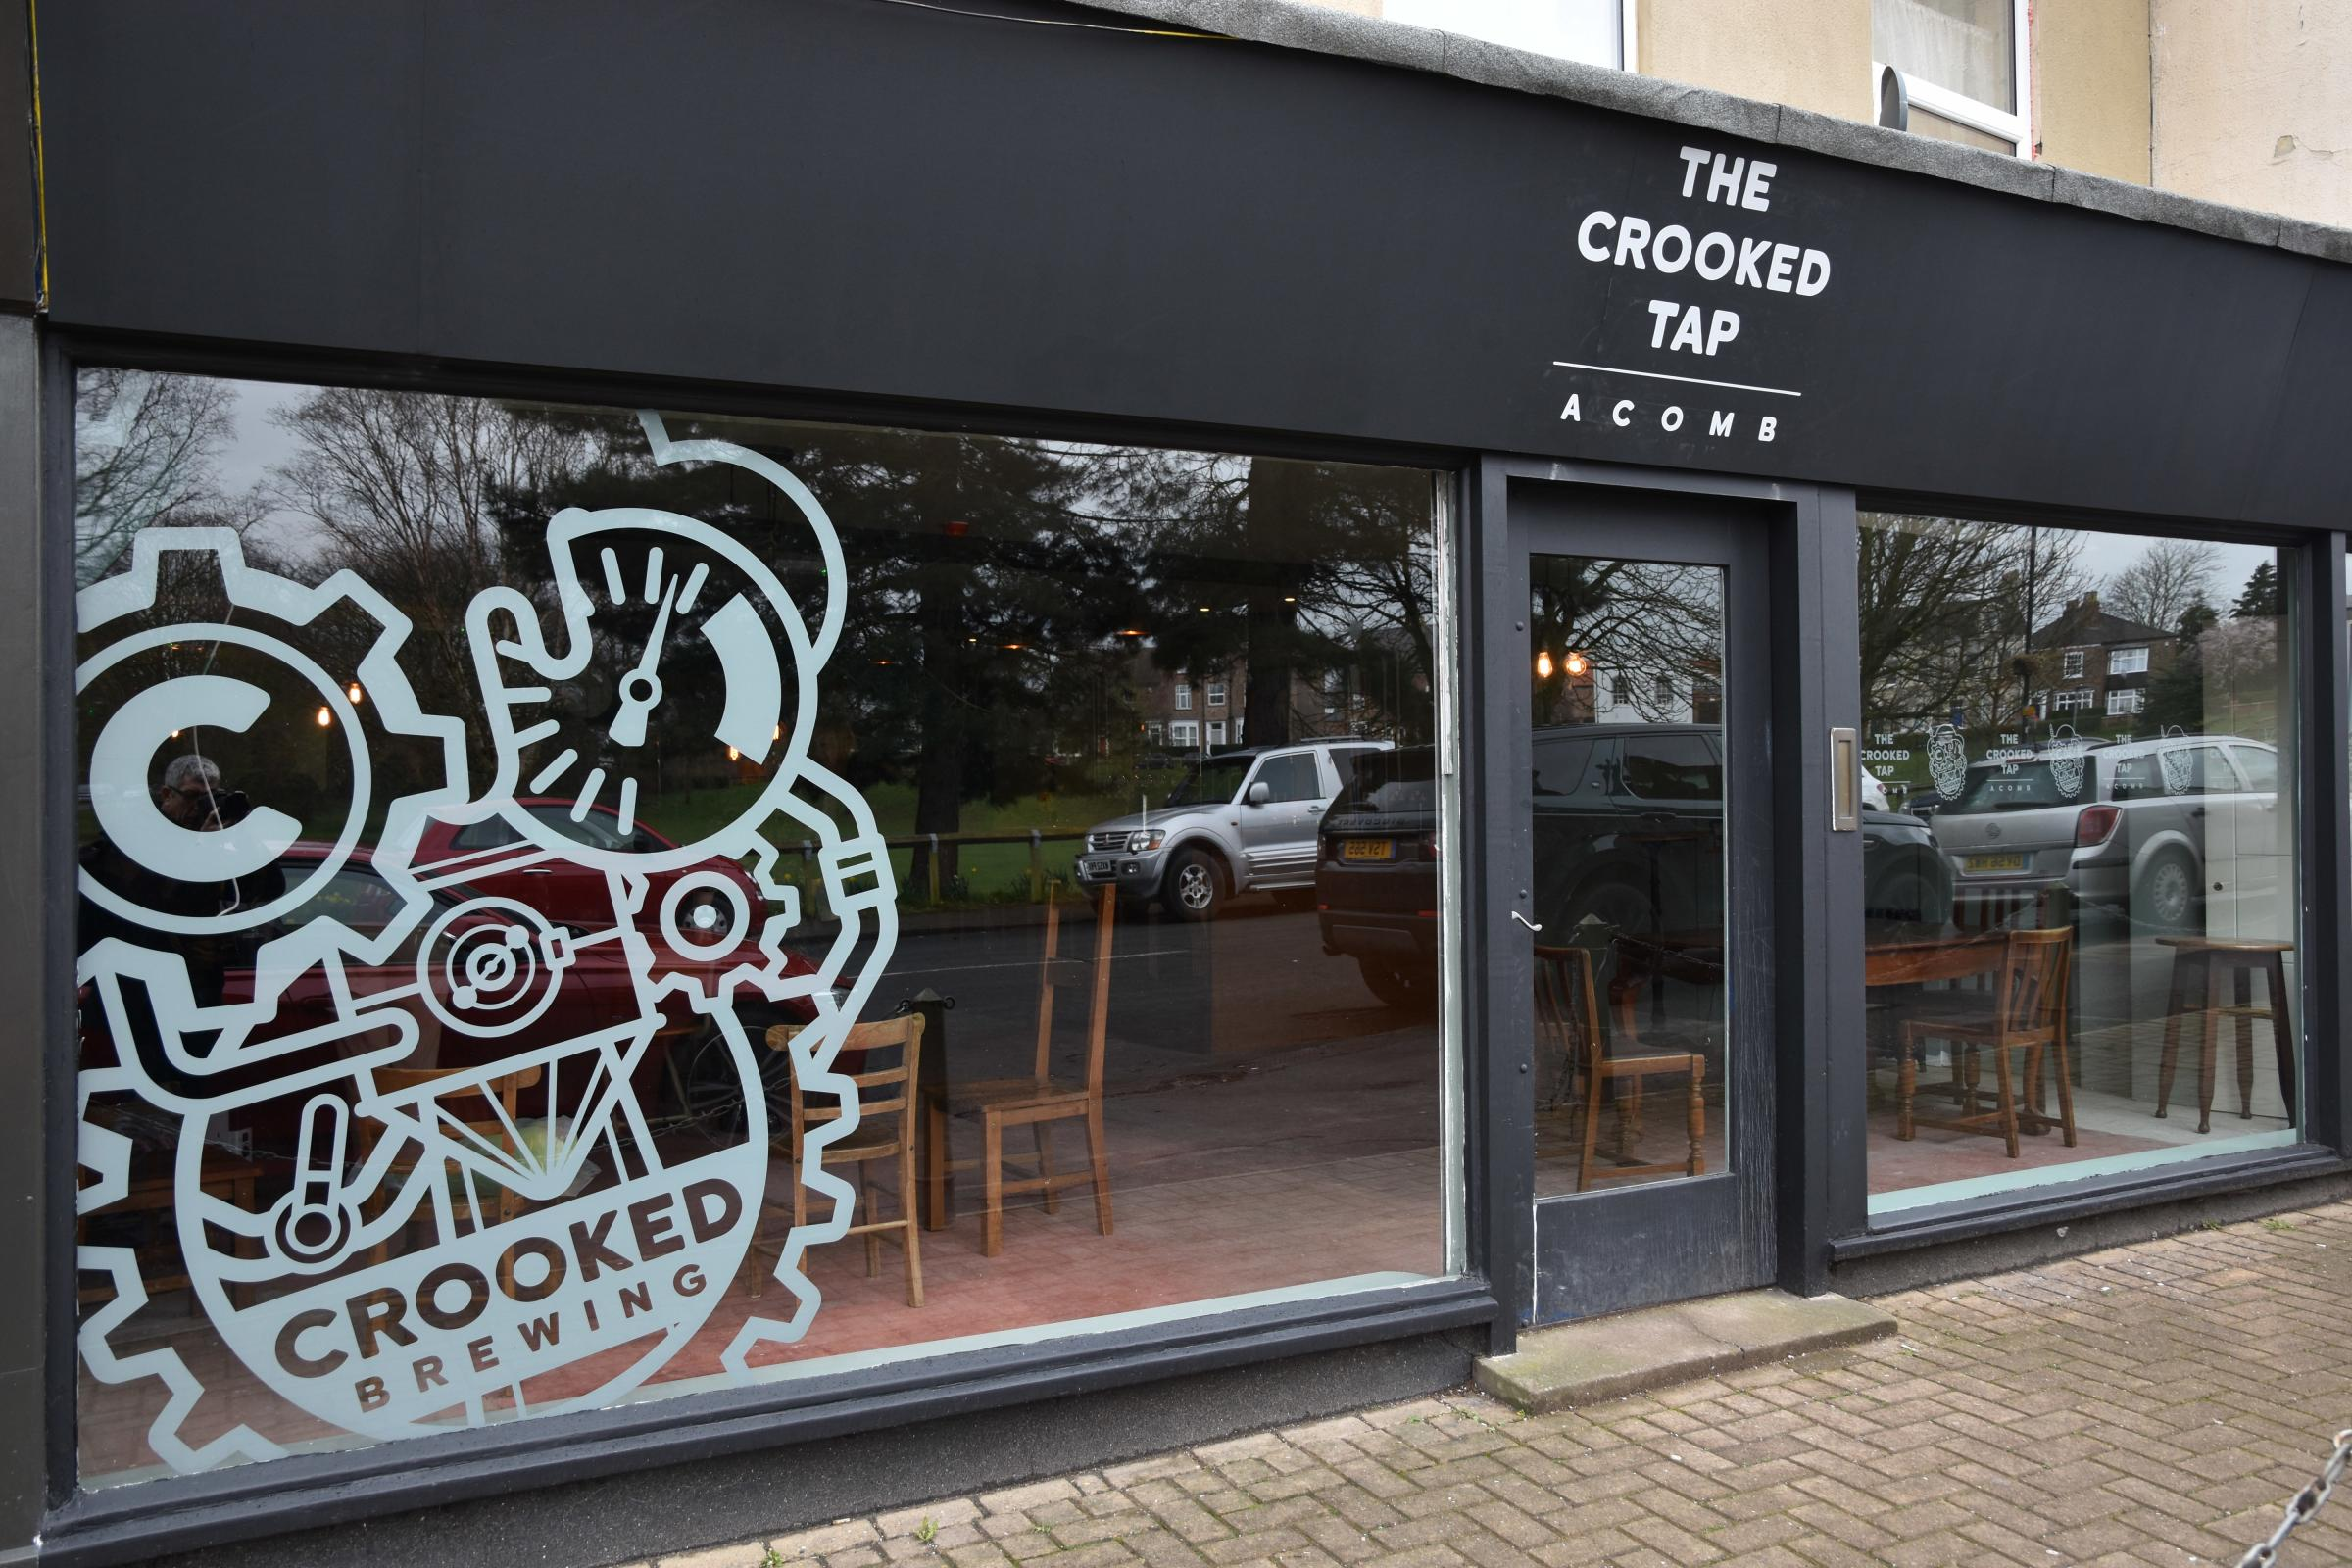 New bar The Crooked Tap ready to open in Acomb | York Press